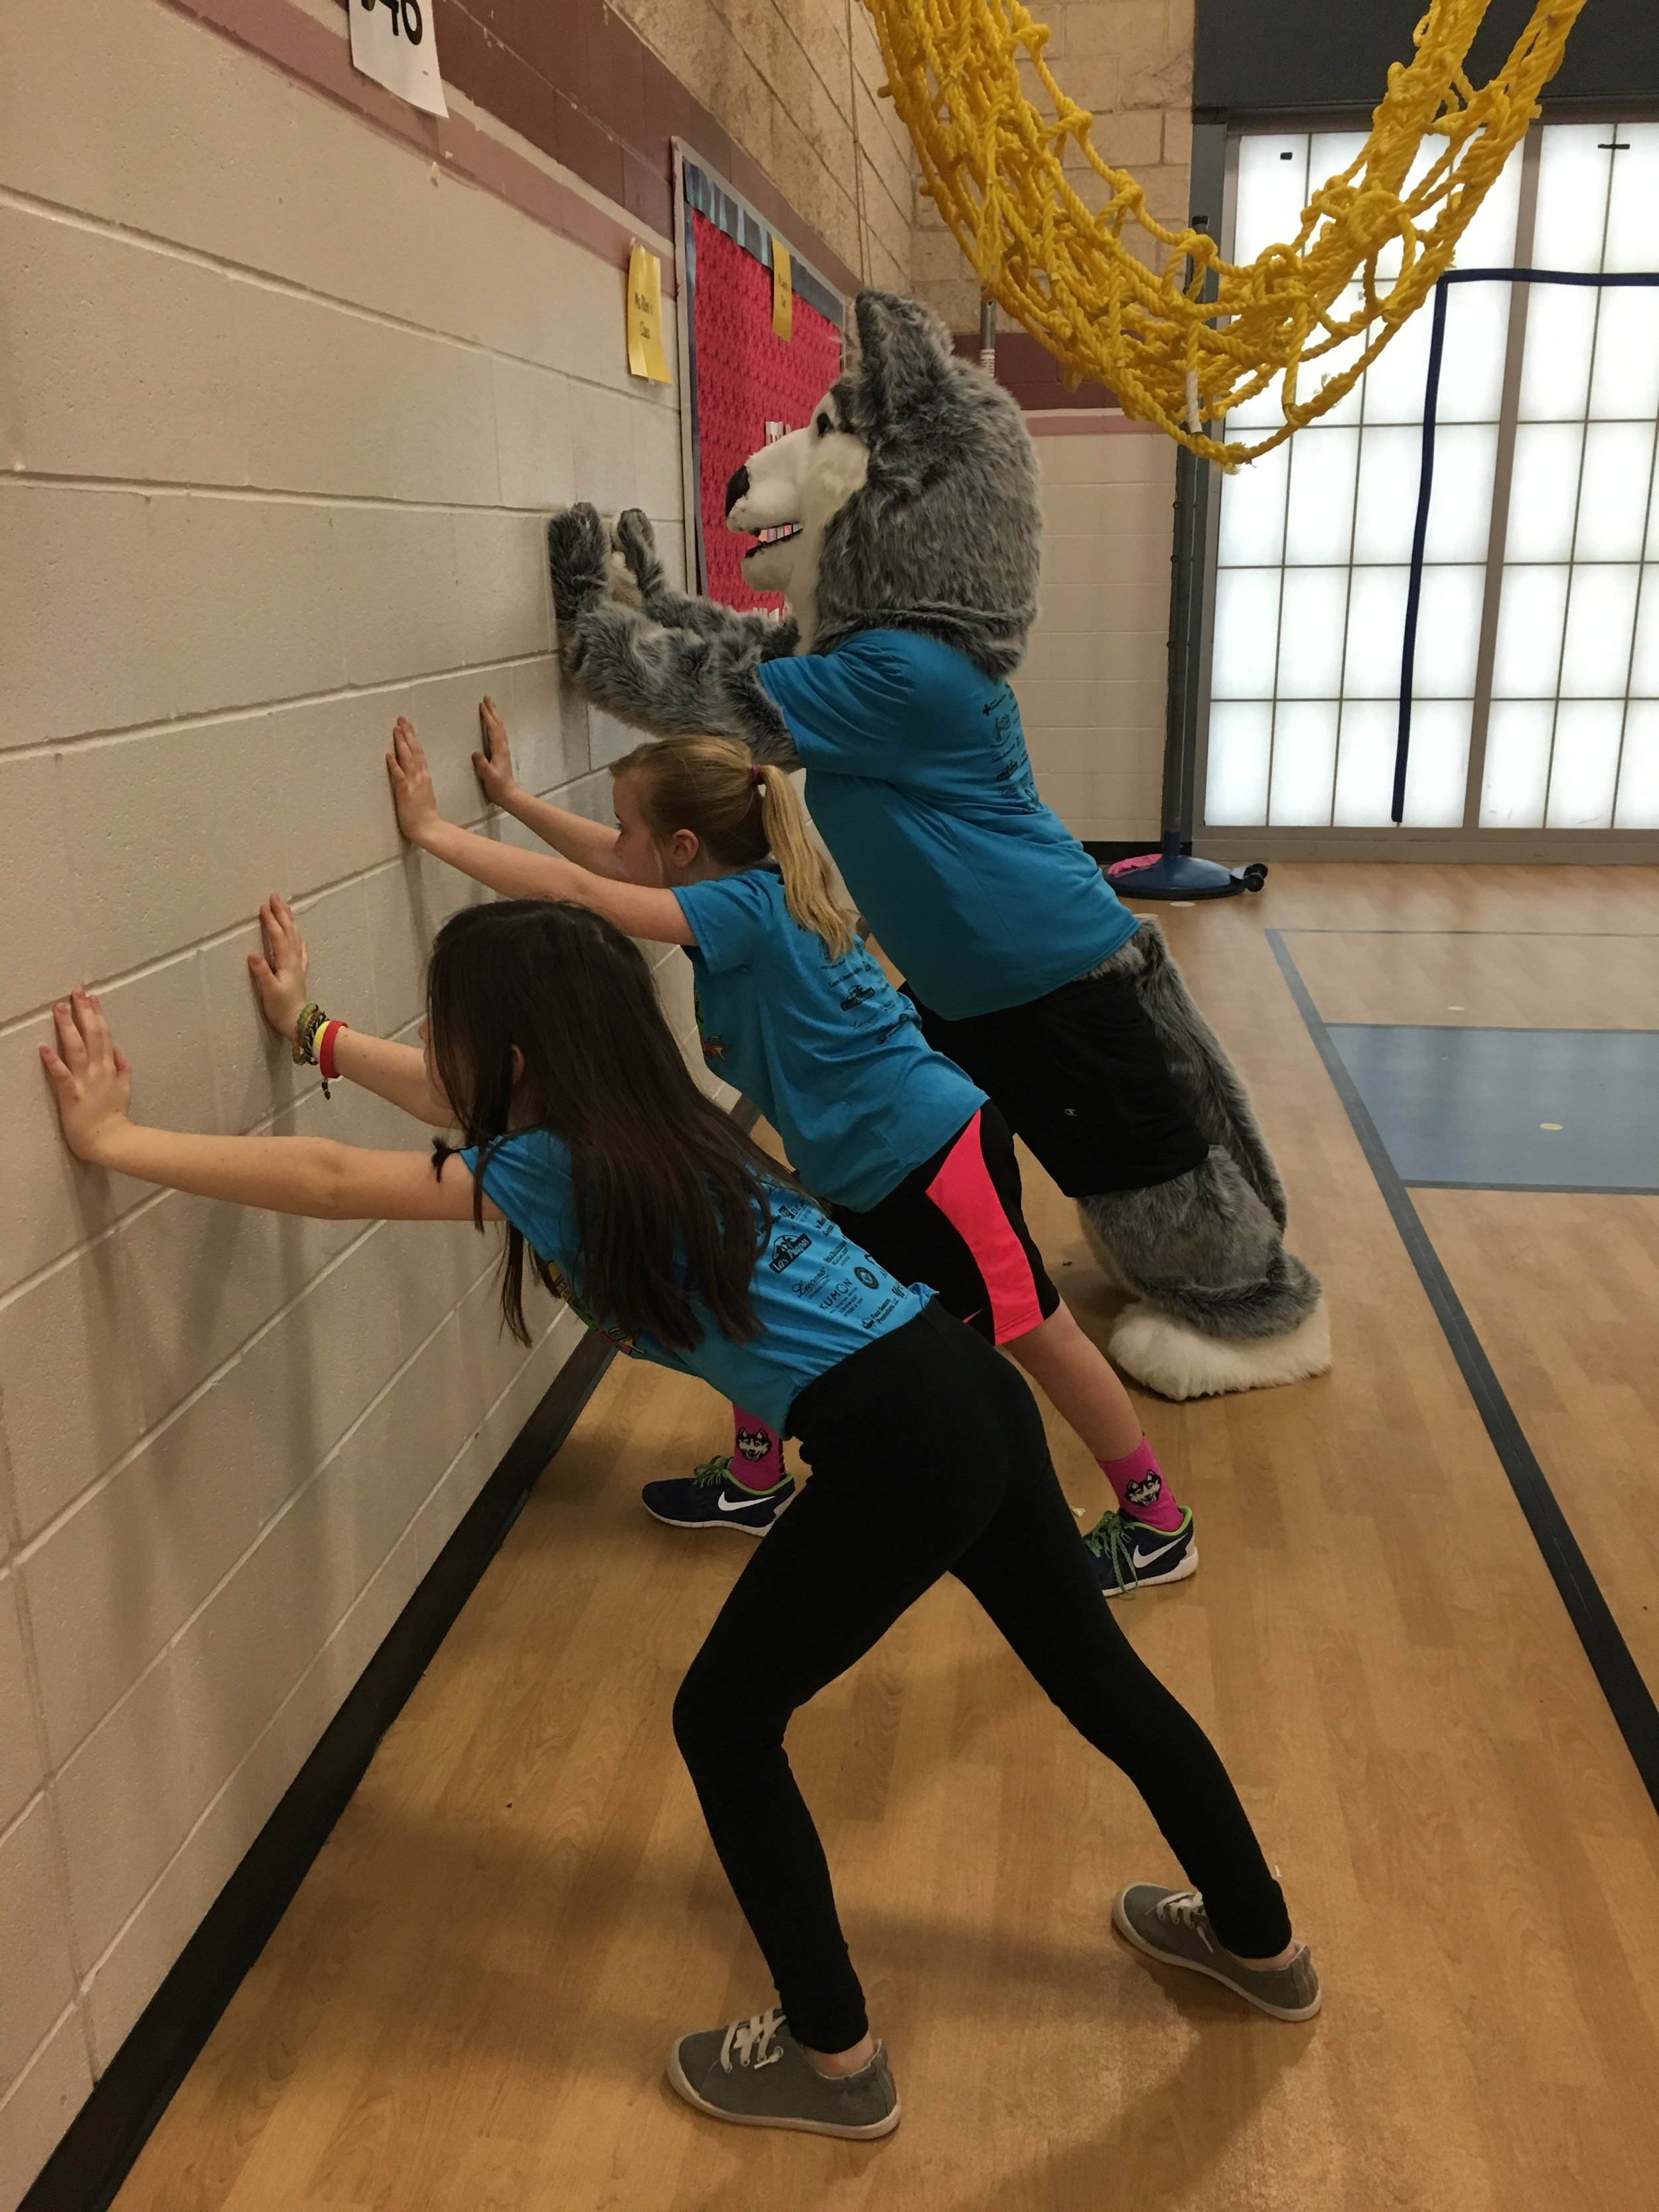 PE Class is excellent for stretching.